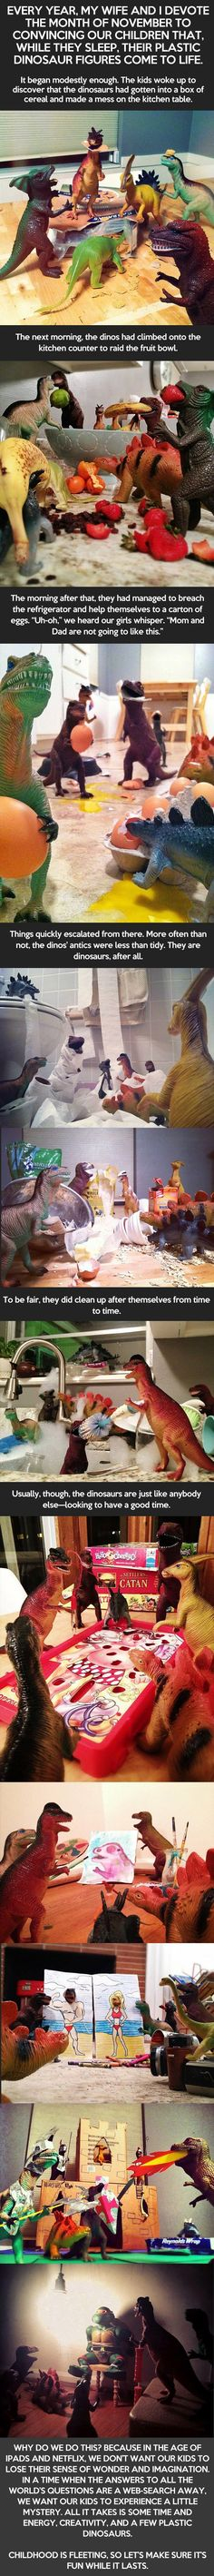 Parent of the year material right here. Look what this couple did for their kids with their toy dinosaurs every night while they were asleep. Awesome!